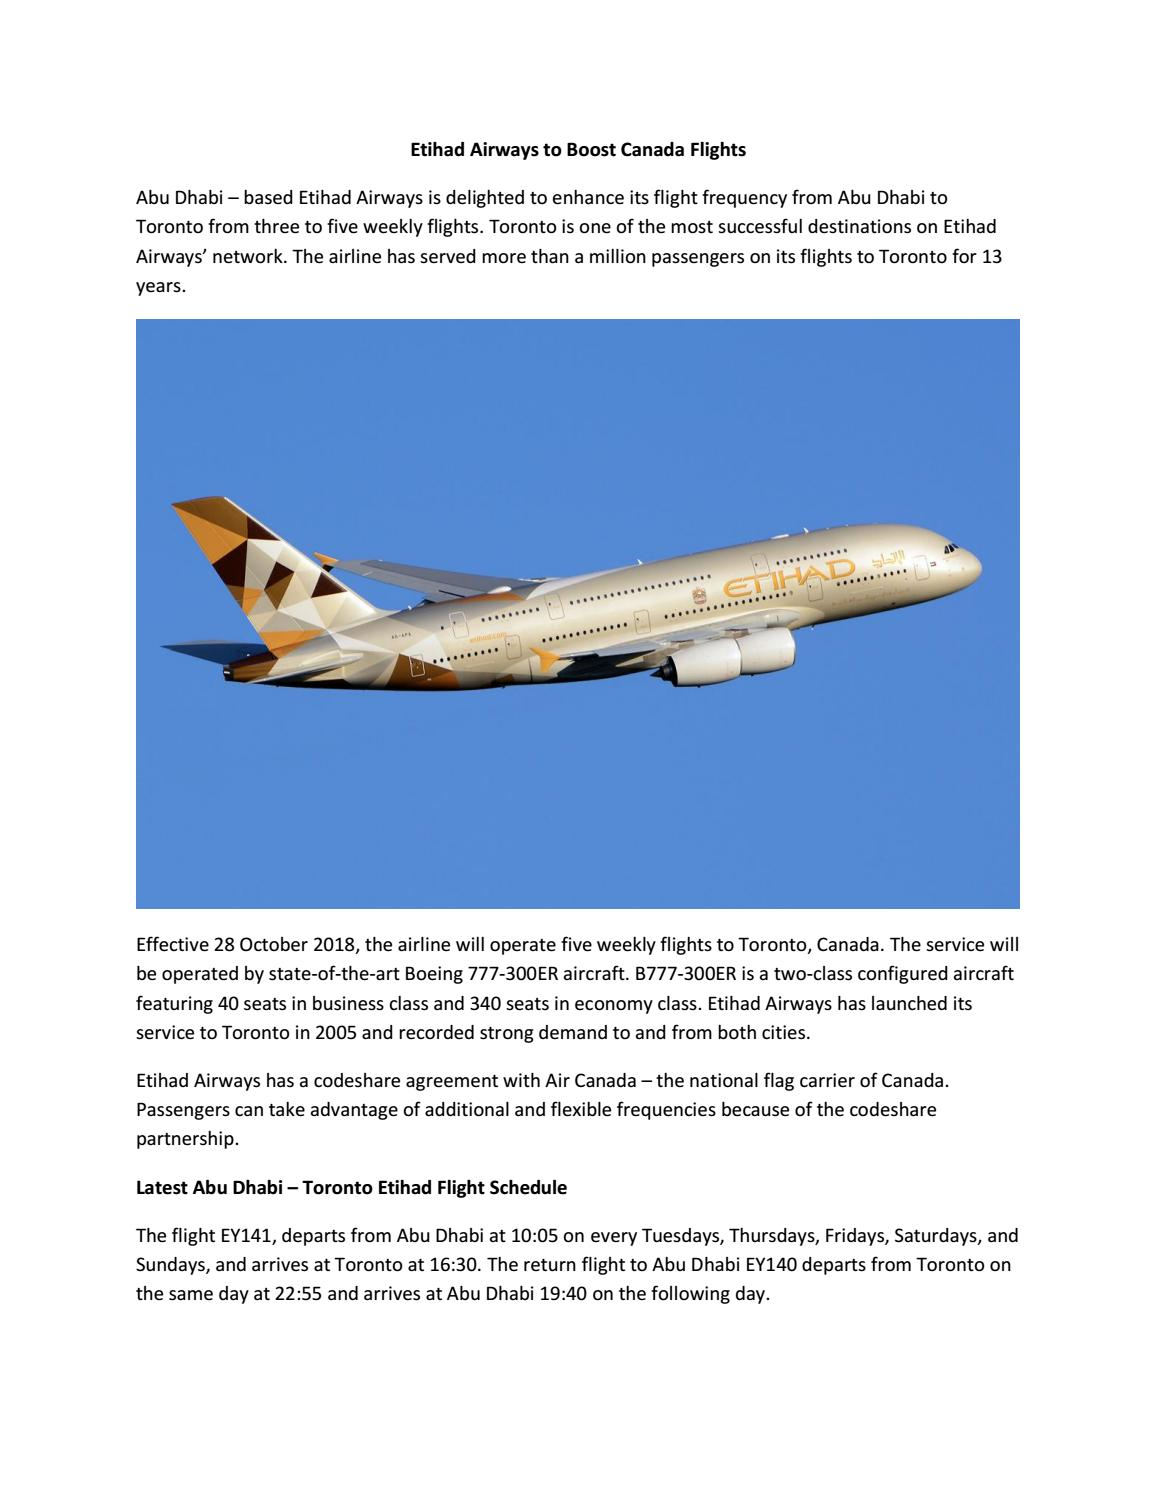 Etihad Airways to Boost Canada Flights by Rishad Ahmed MD